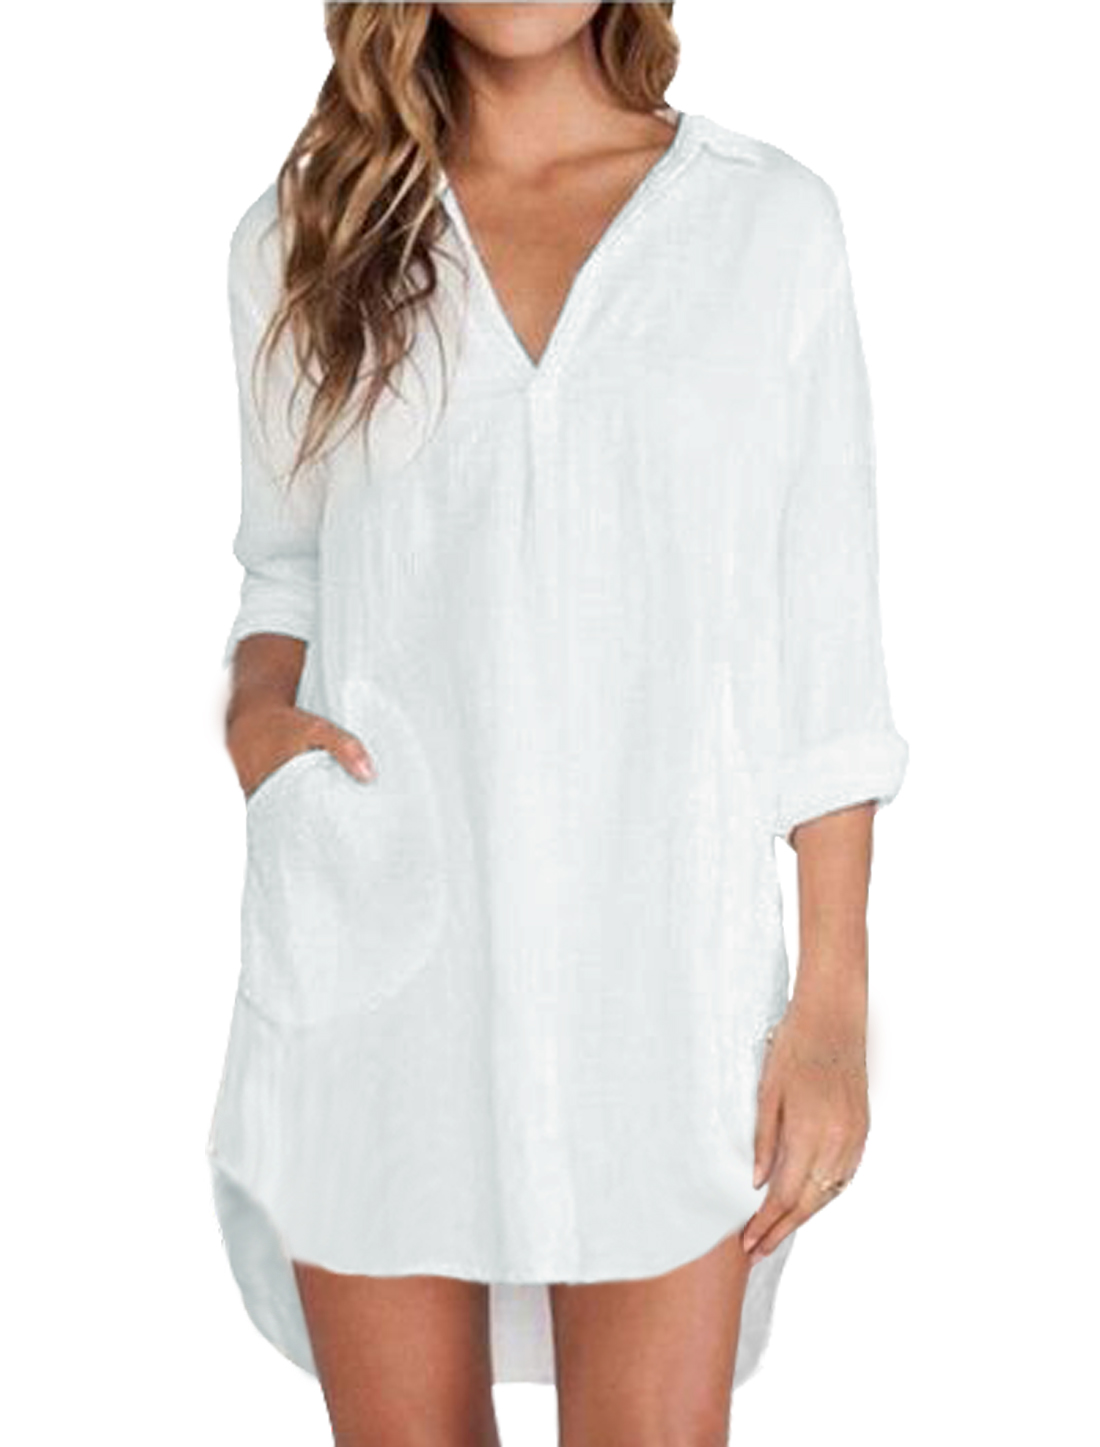 Ladies Long Sleeve Turn Down Collar Button Down Casual Tunic Shirt White S